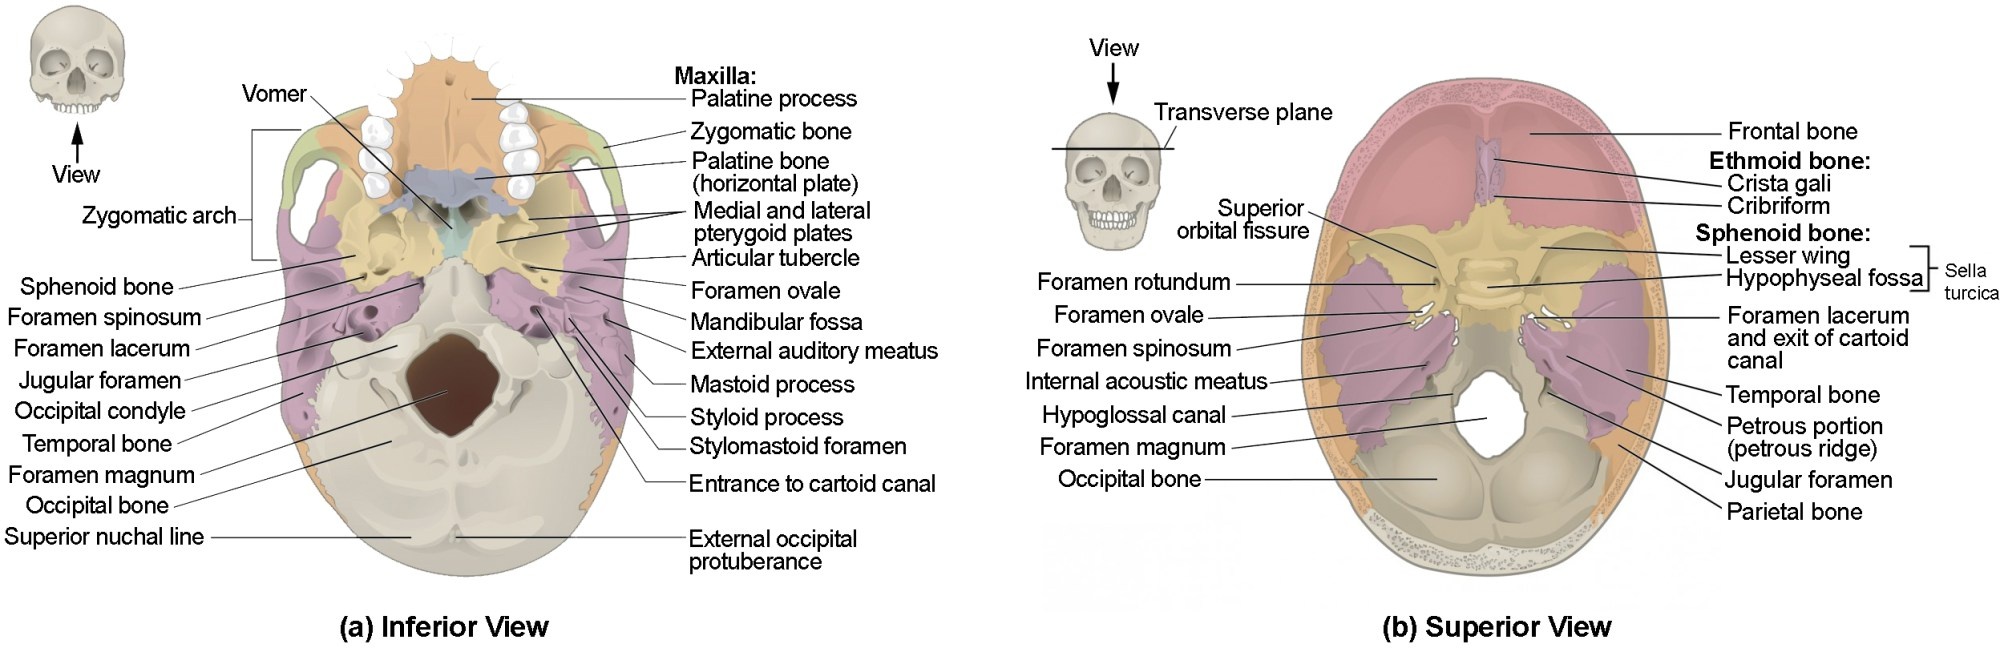 hight resolution of this image shows the superior and inferior view of the skull base in the top figure 6